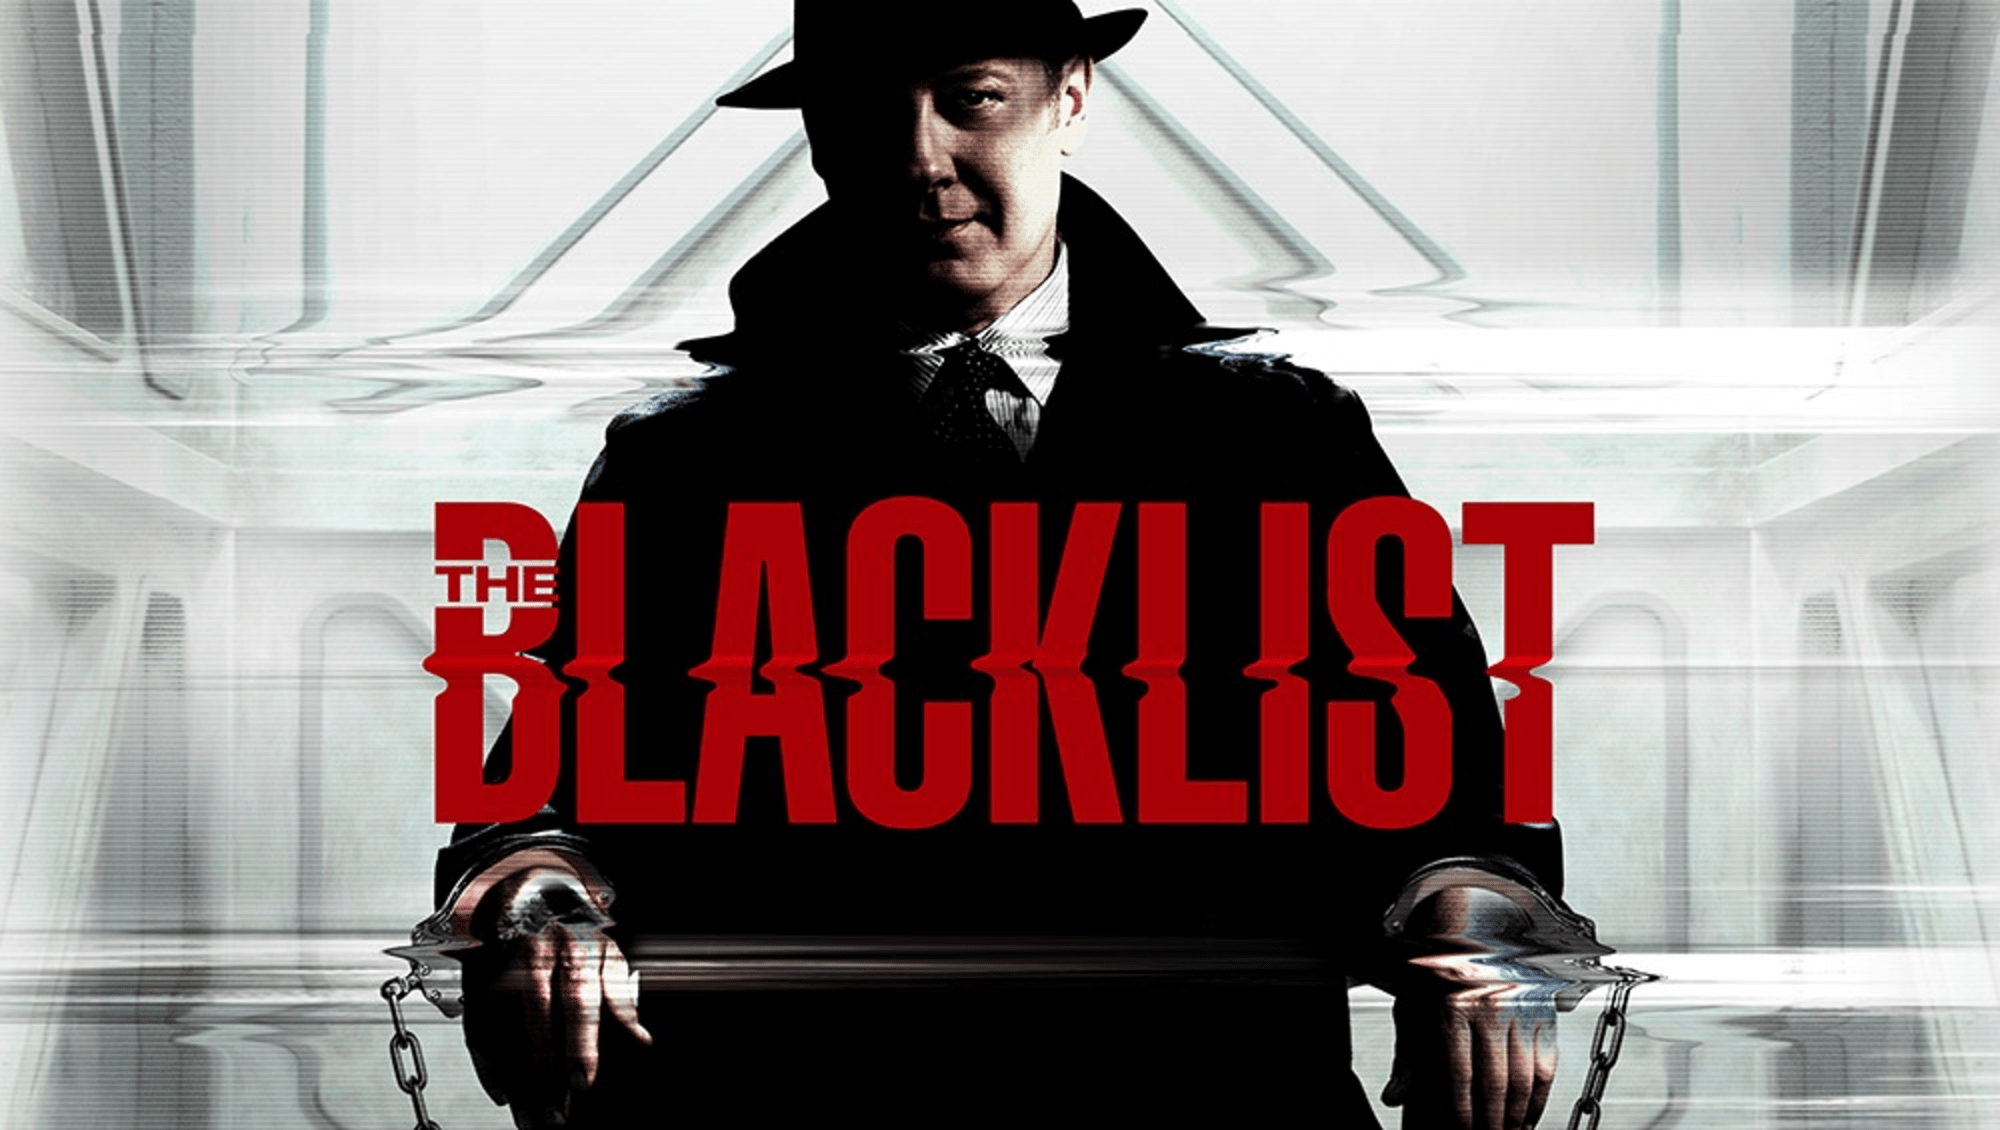 who hired isabella stone blacklist